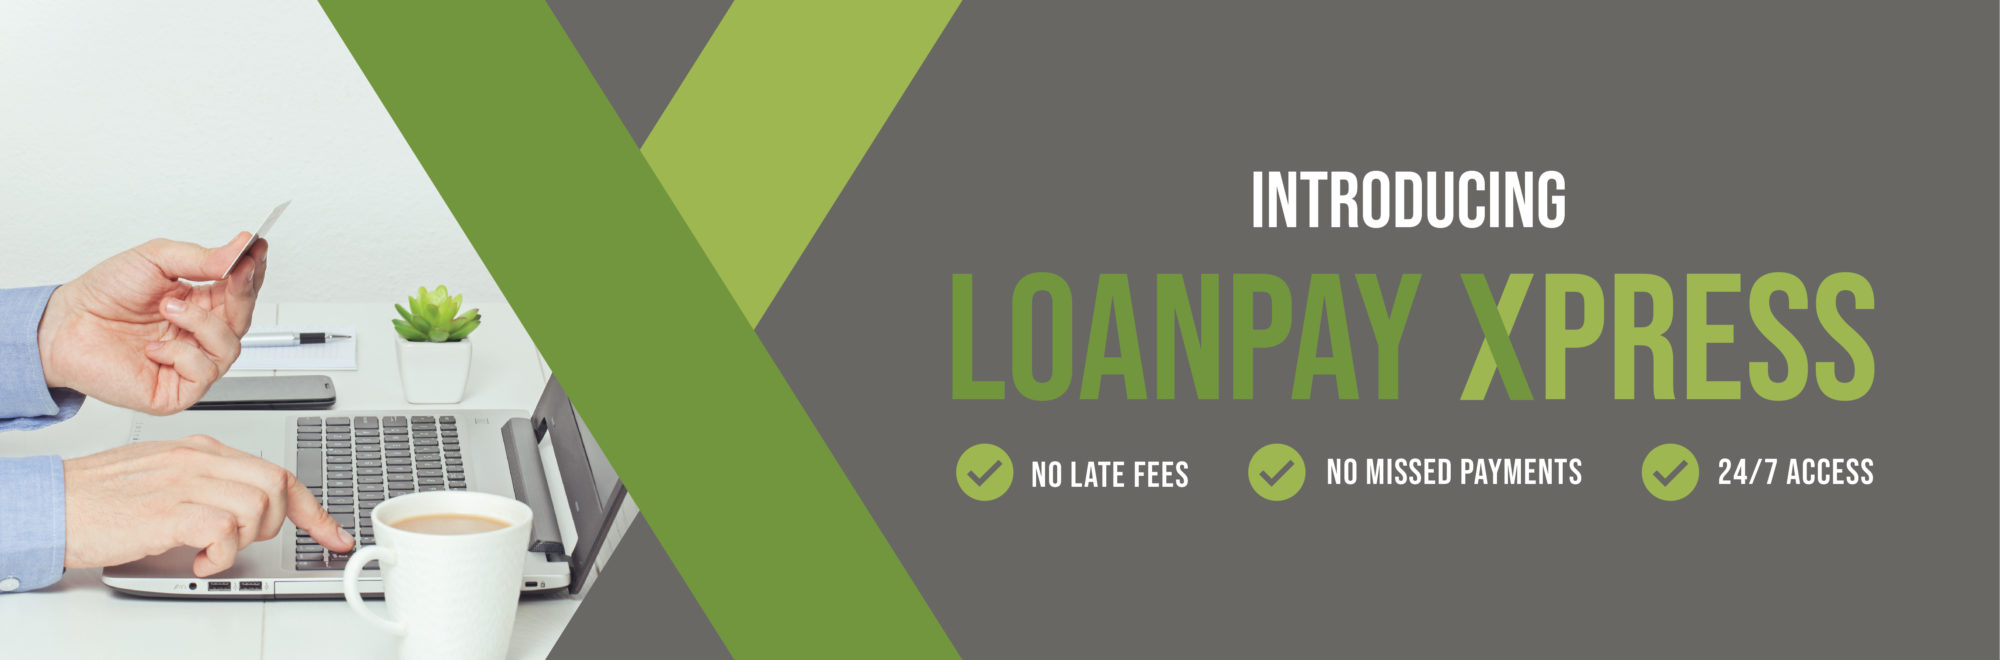 Introducting Loan Pay Xpress with no late fees, no missed payments and 24/7 access